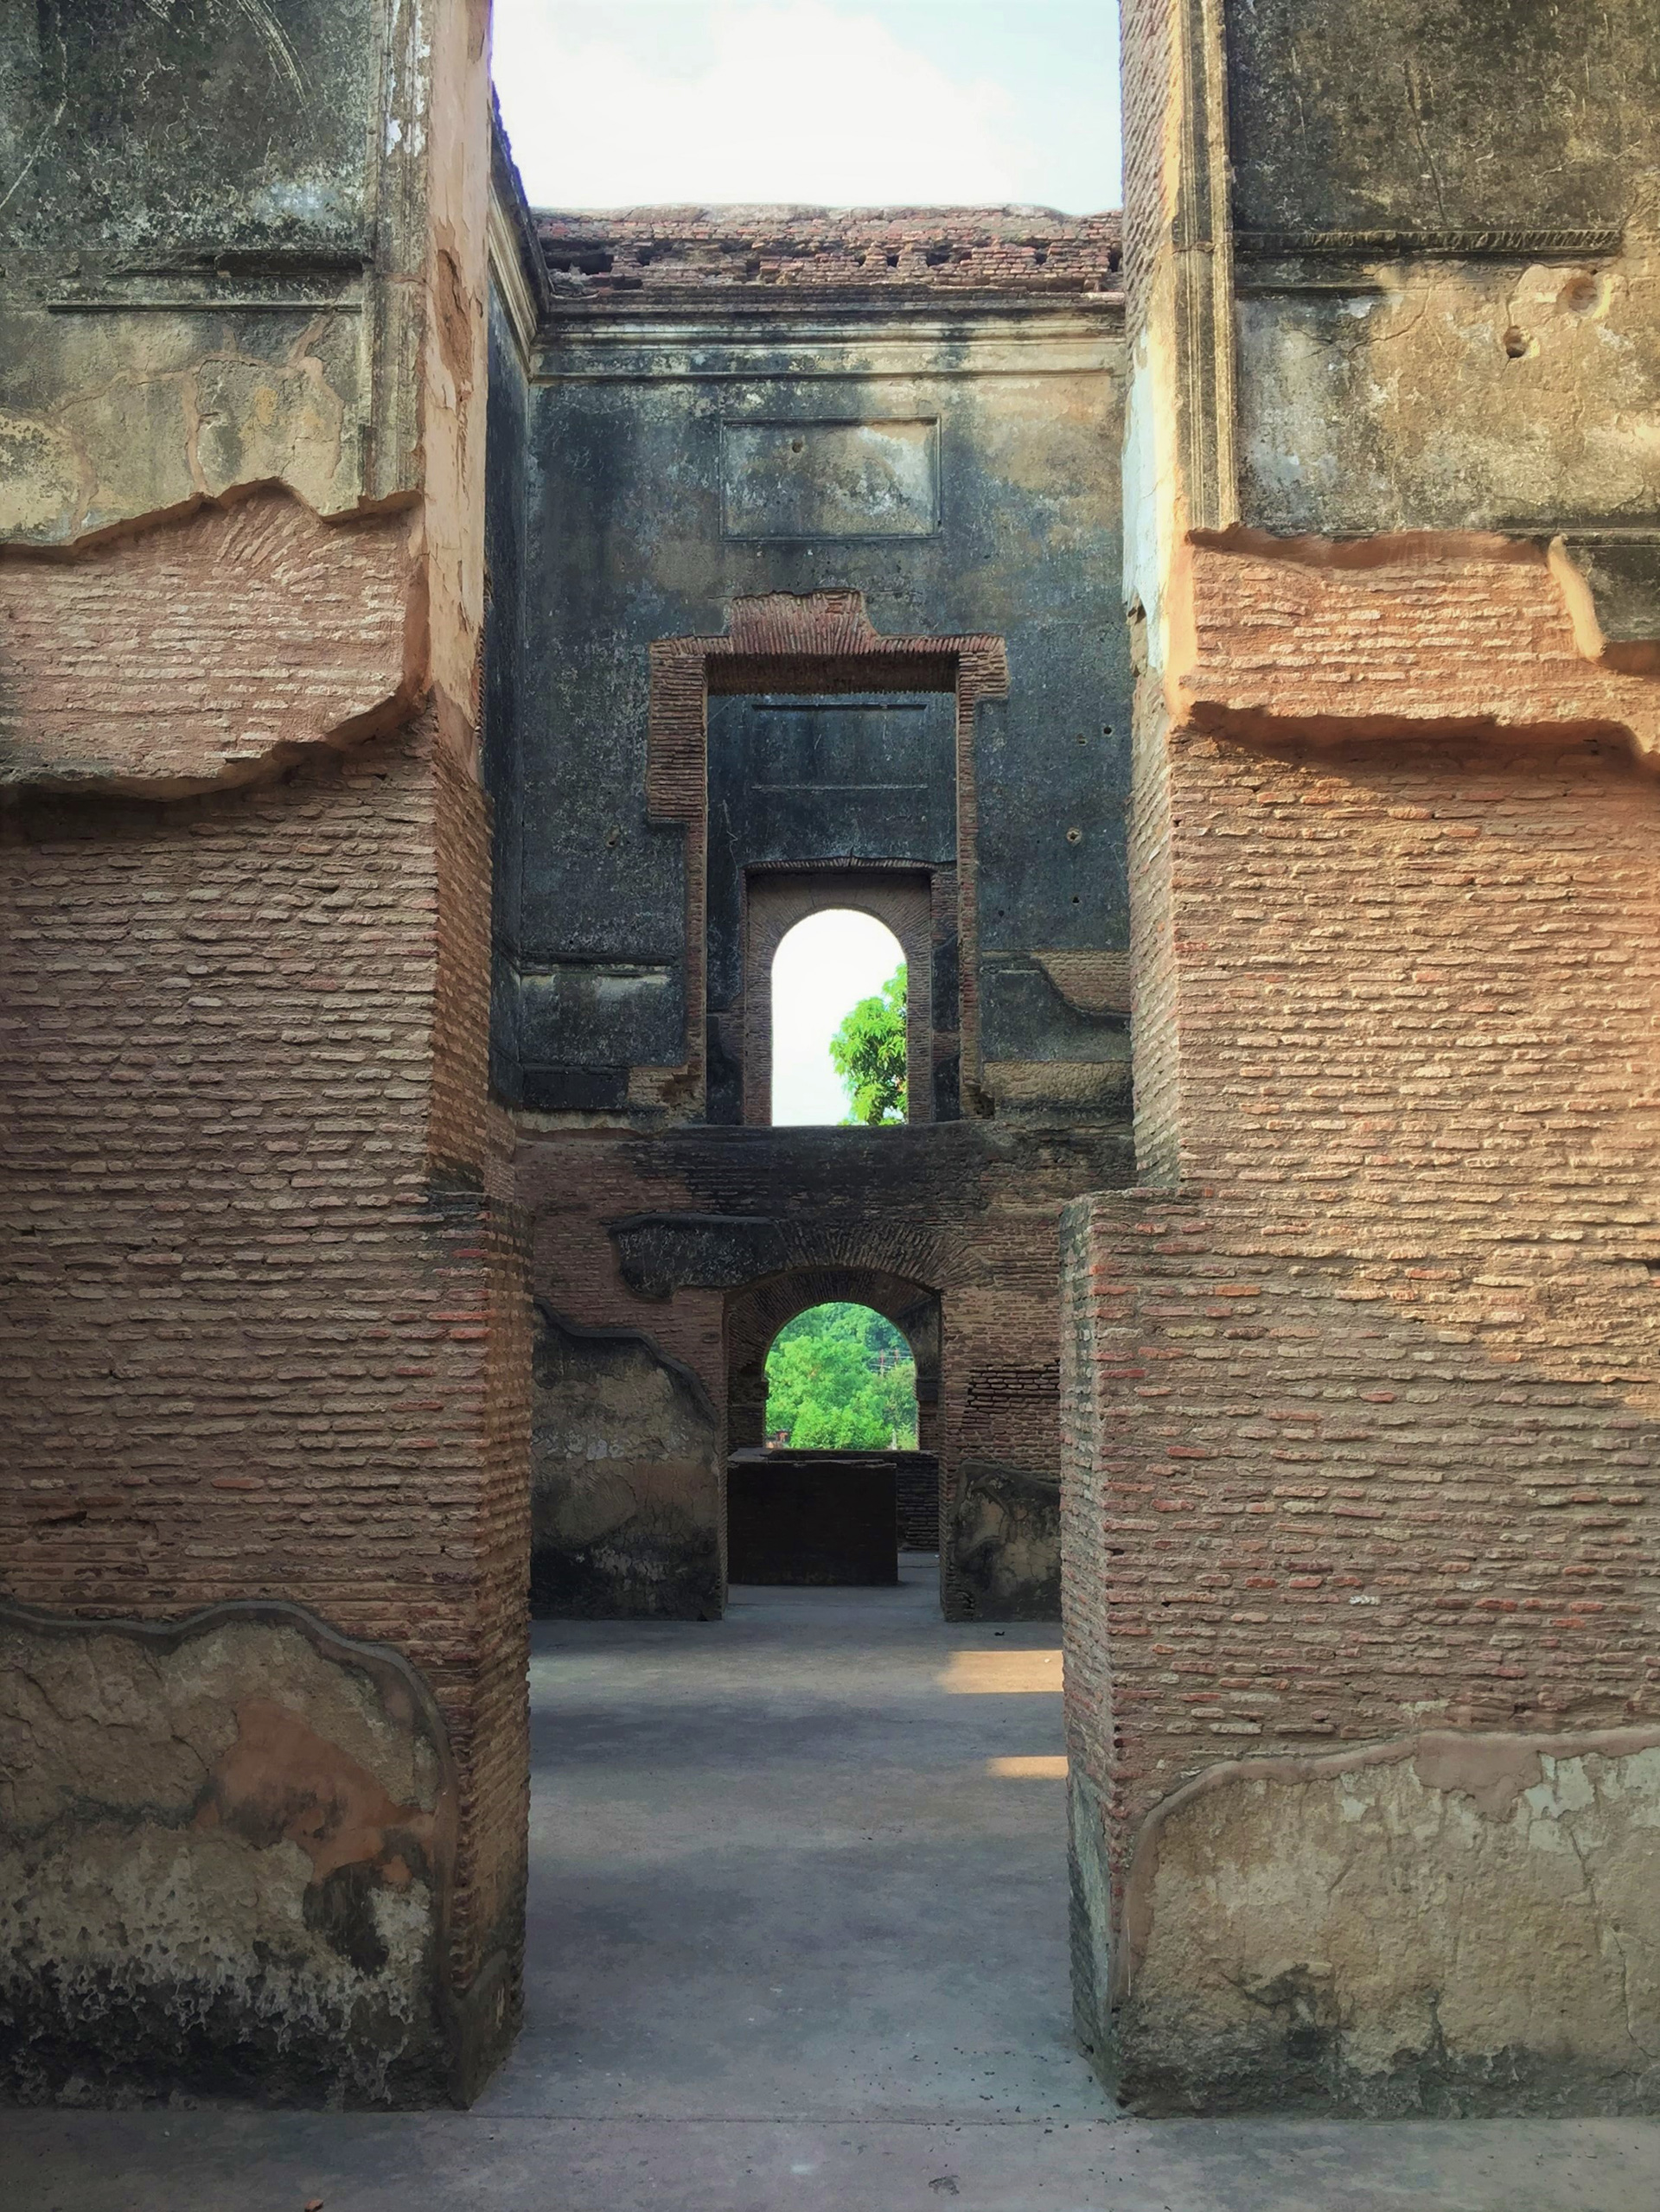 Axial frames have continual depth | The Residency| Lucknow| Soumitro Ghosh| STIR